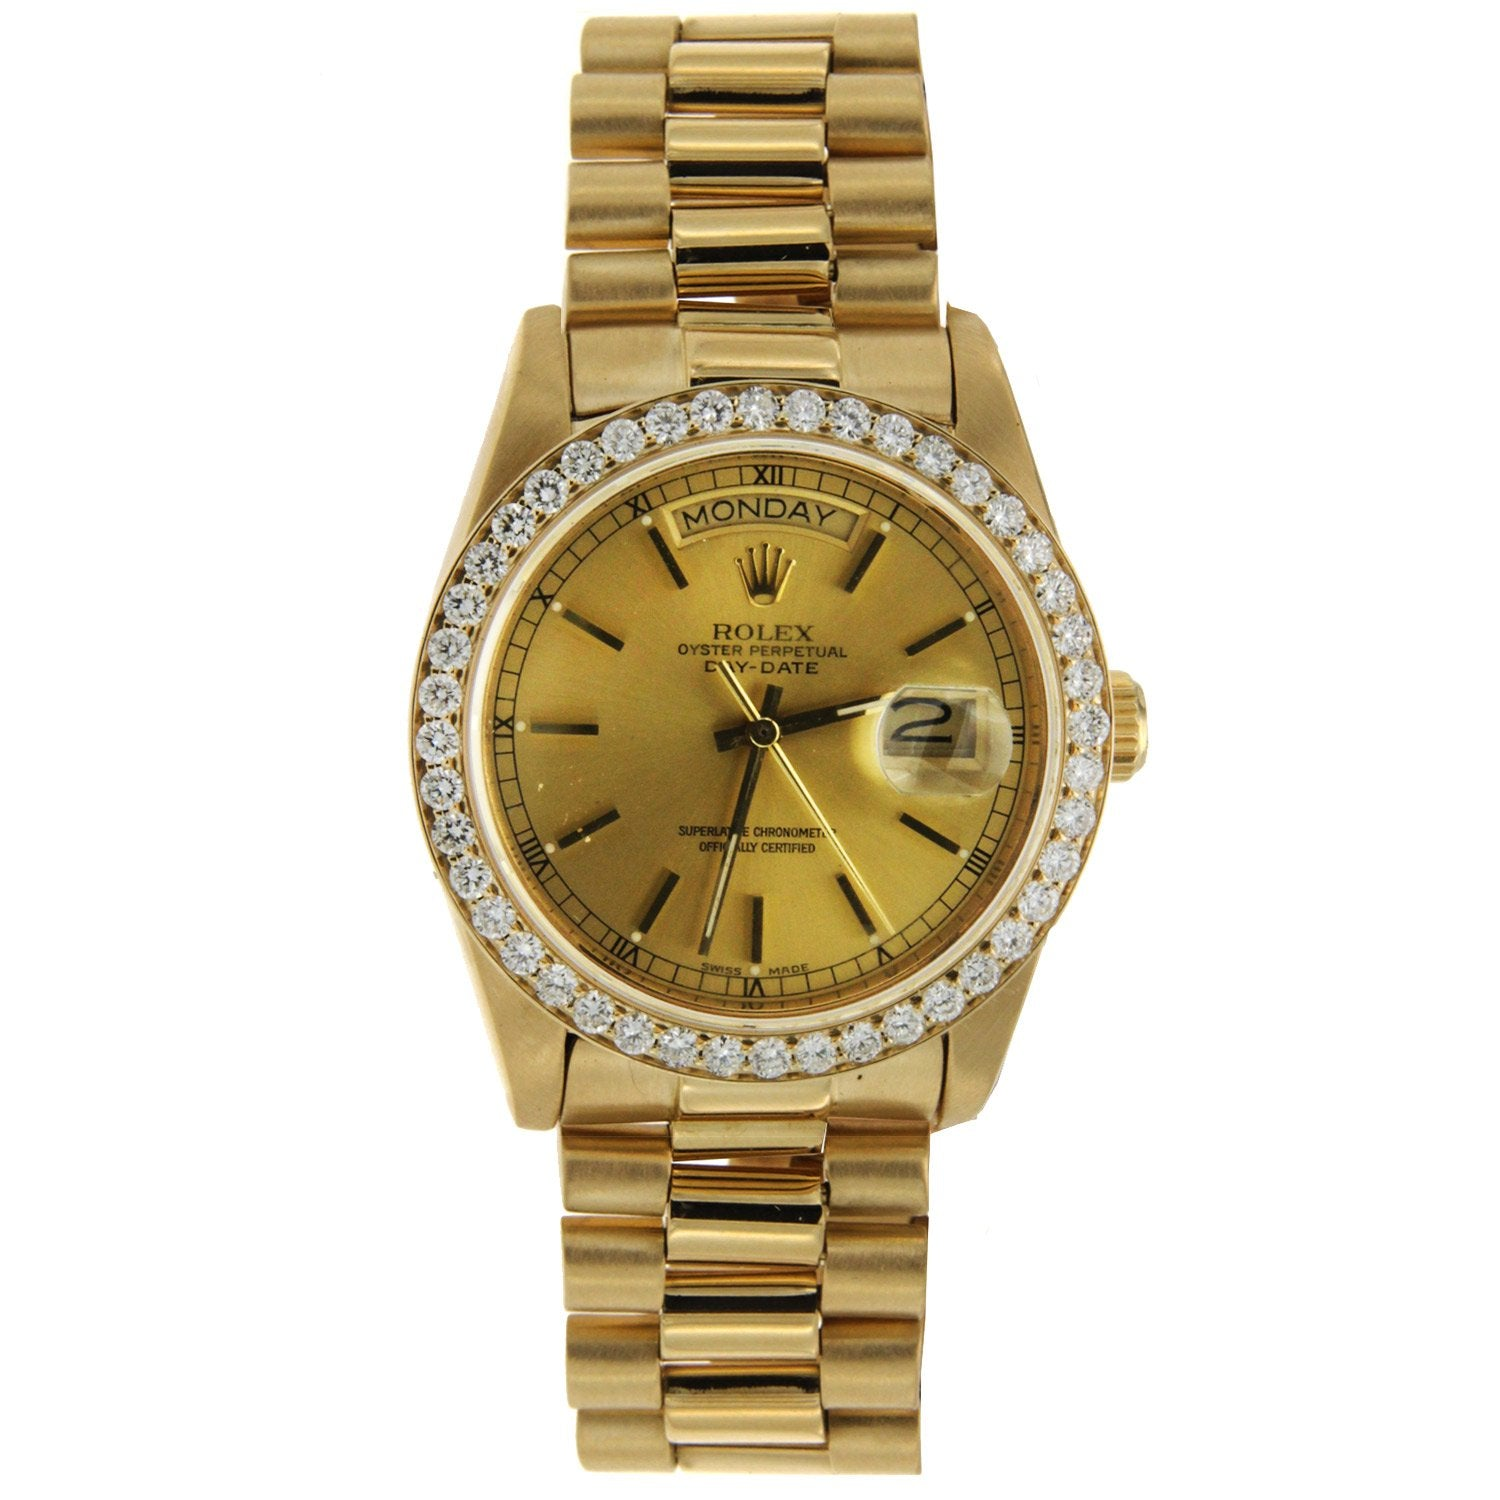 Rolex Day-Date Diamond Watch, 36mm, President 18K Yellow Gold Champagne Dial W/ Diamond Bezel